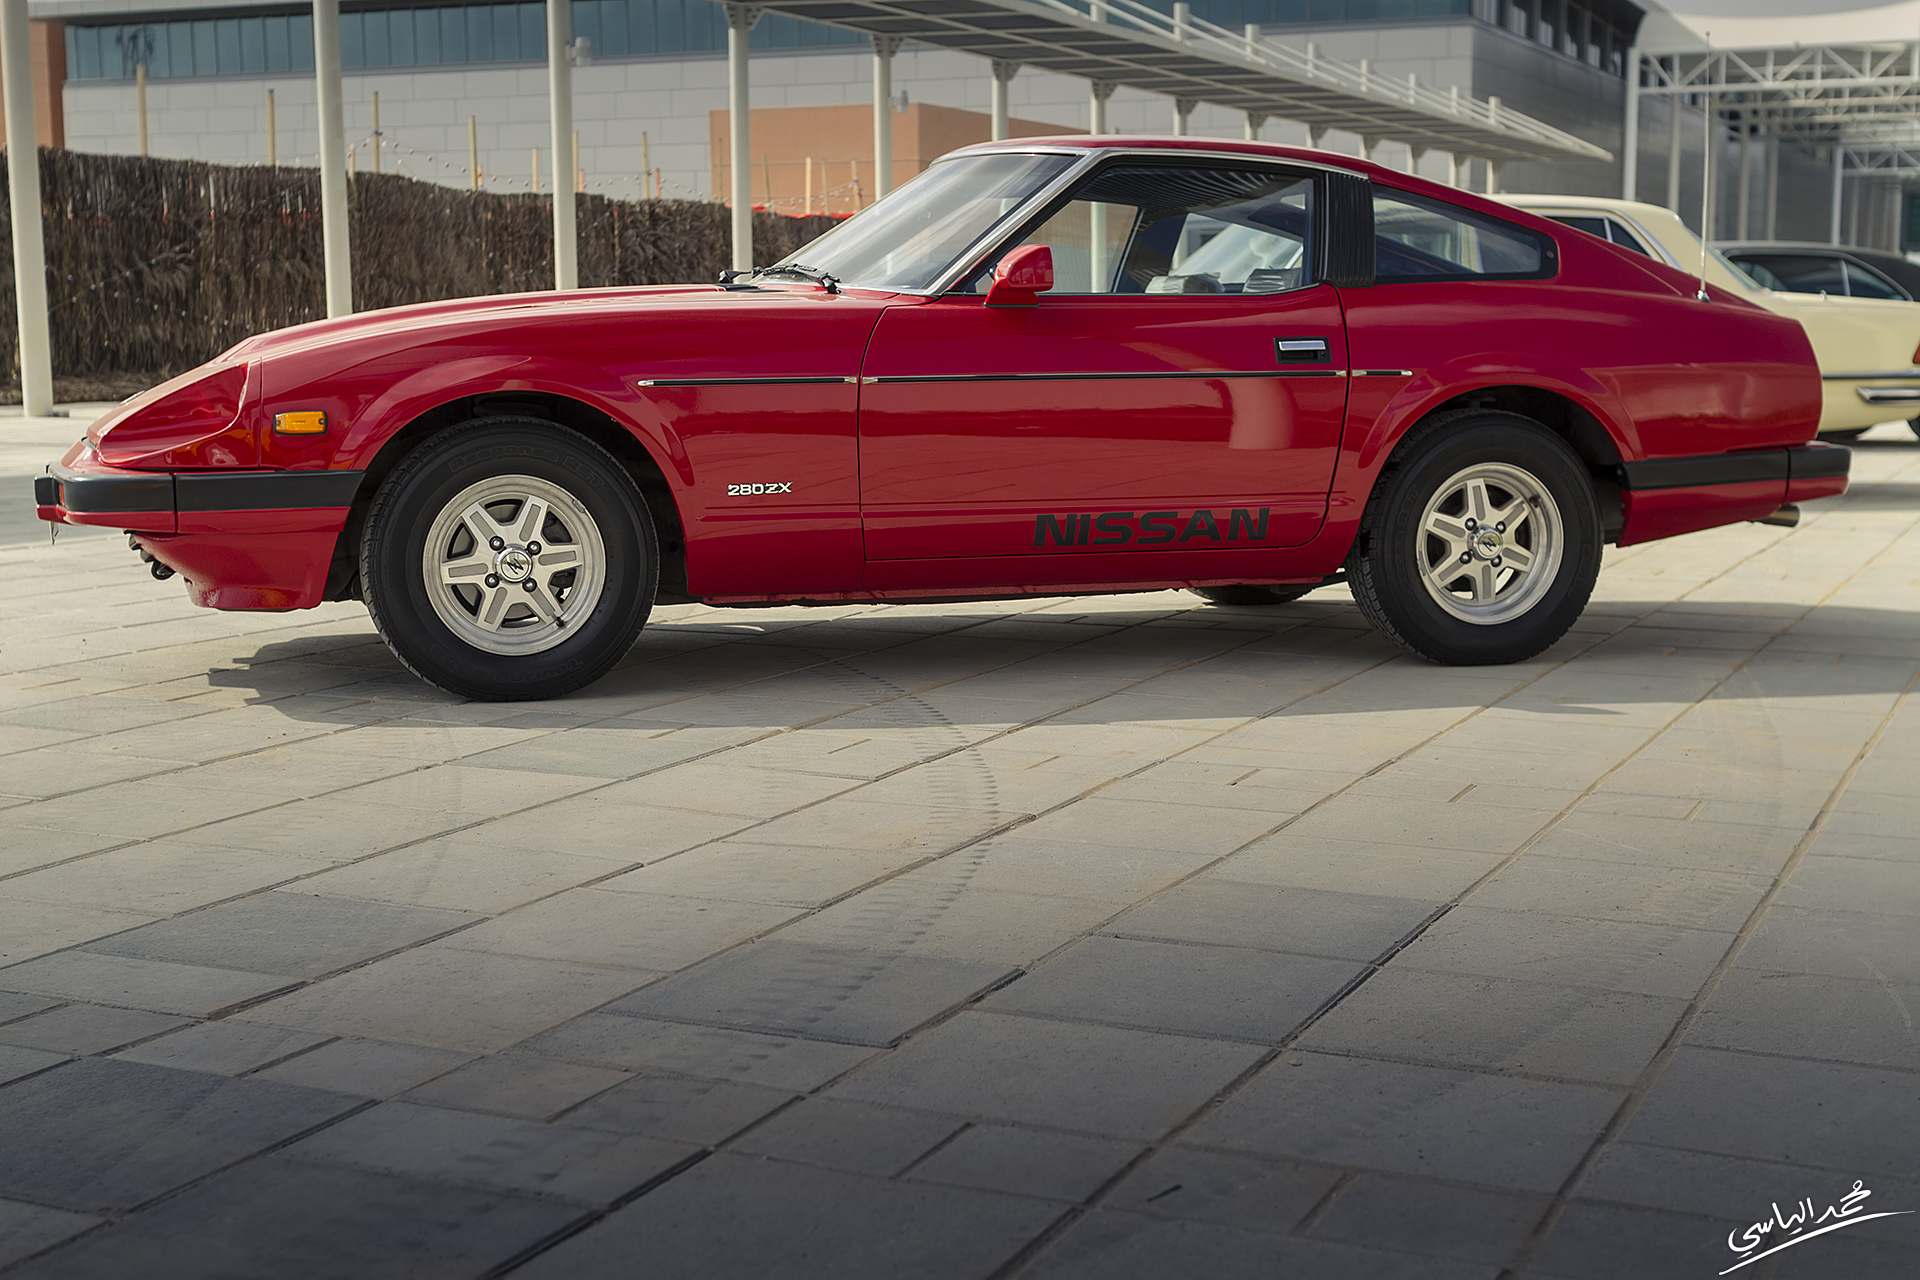 nissan 280zx images #12